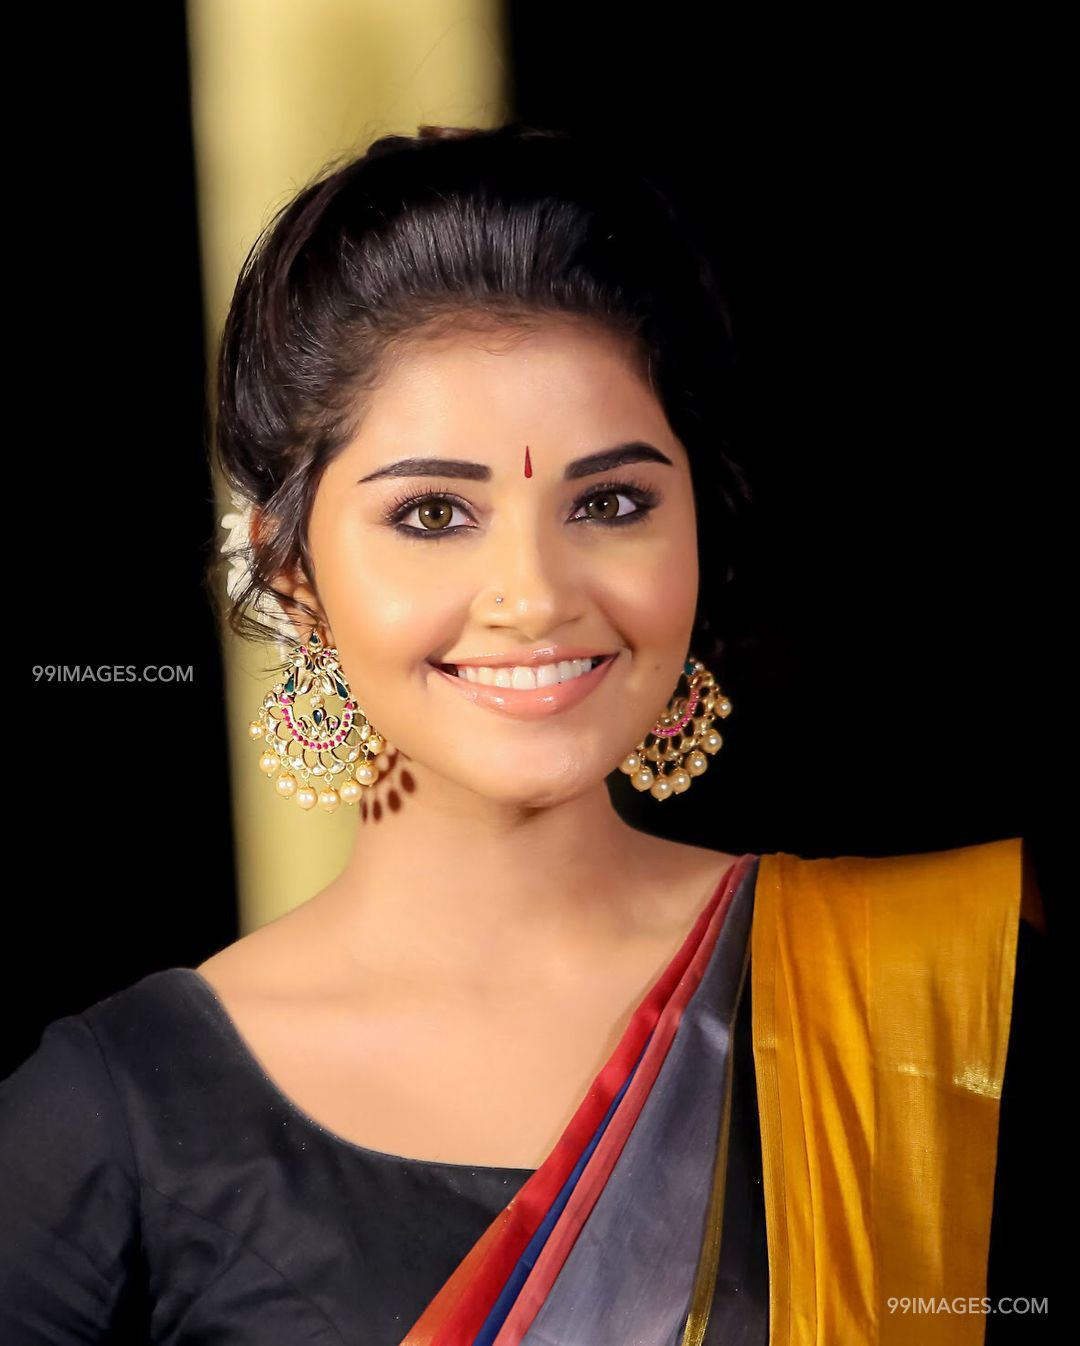 Anupama Parameswaran Beautiful HD Photoshoot Stills & Mobile Wallpapers HD, WhatsApp DP (1080p) (19107) - Anupama Parameswaran